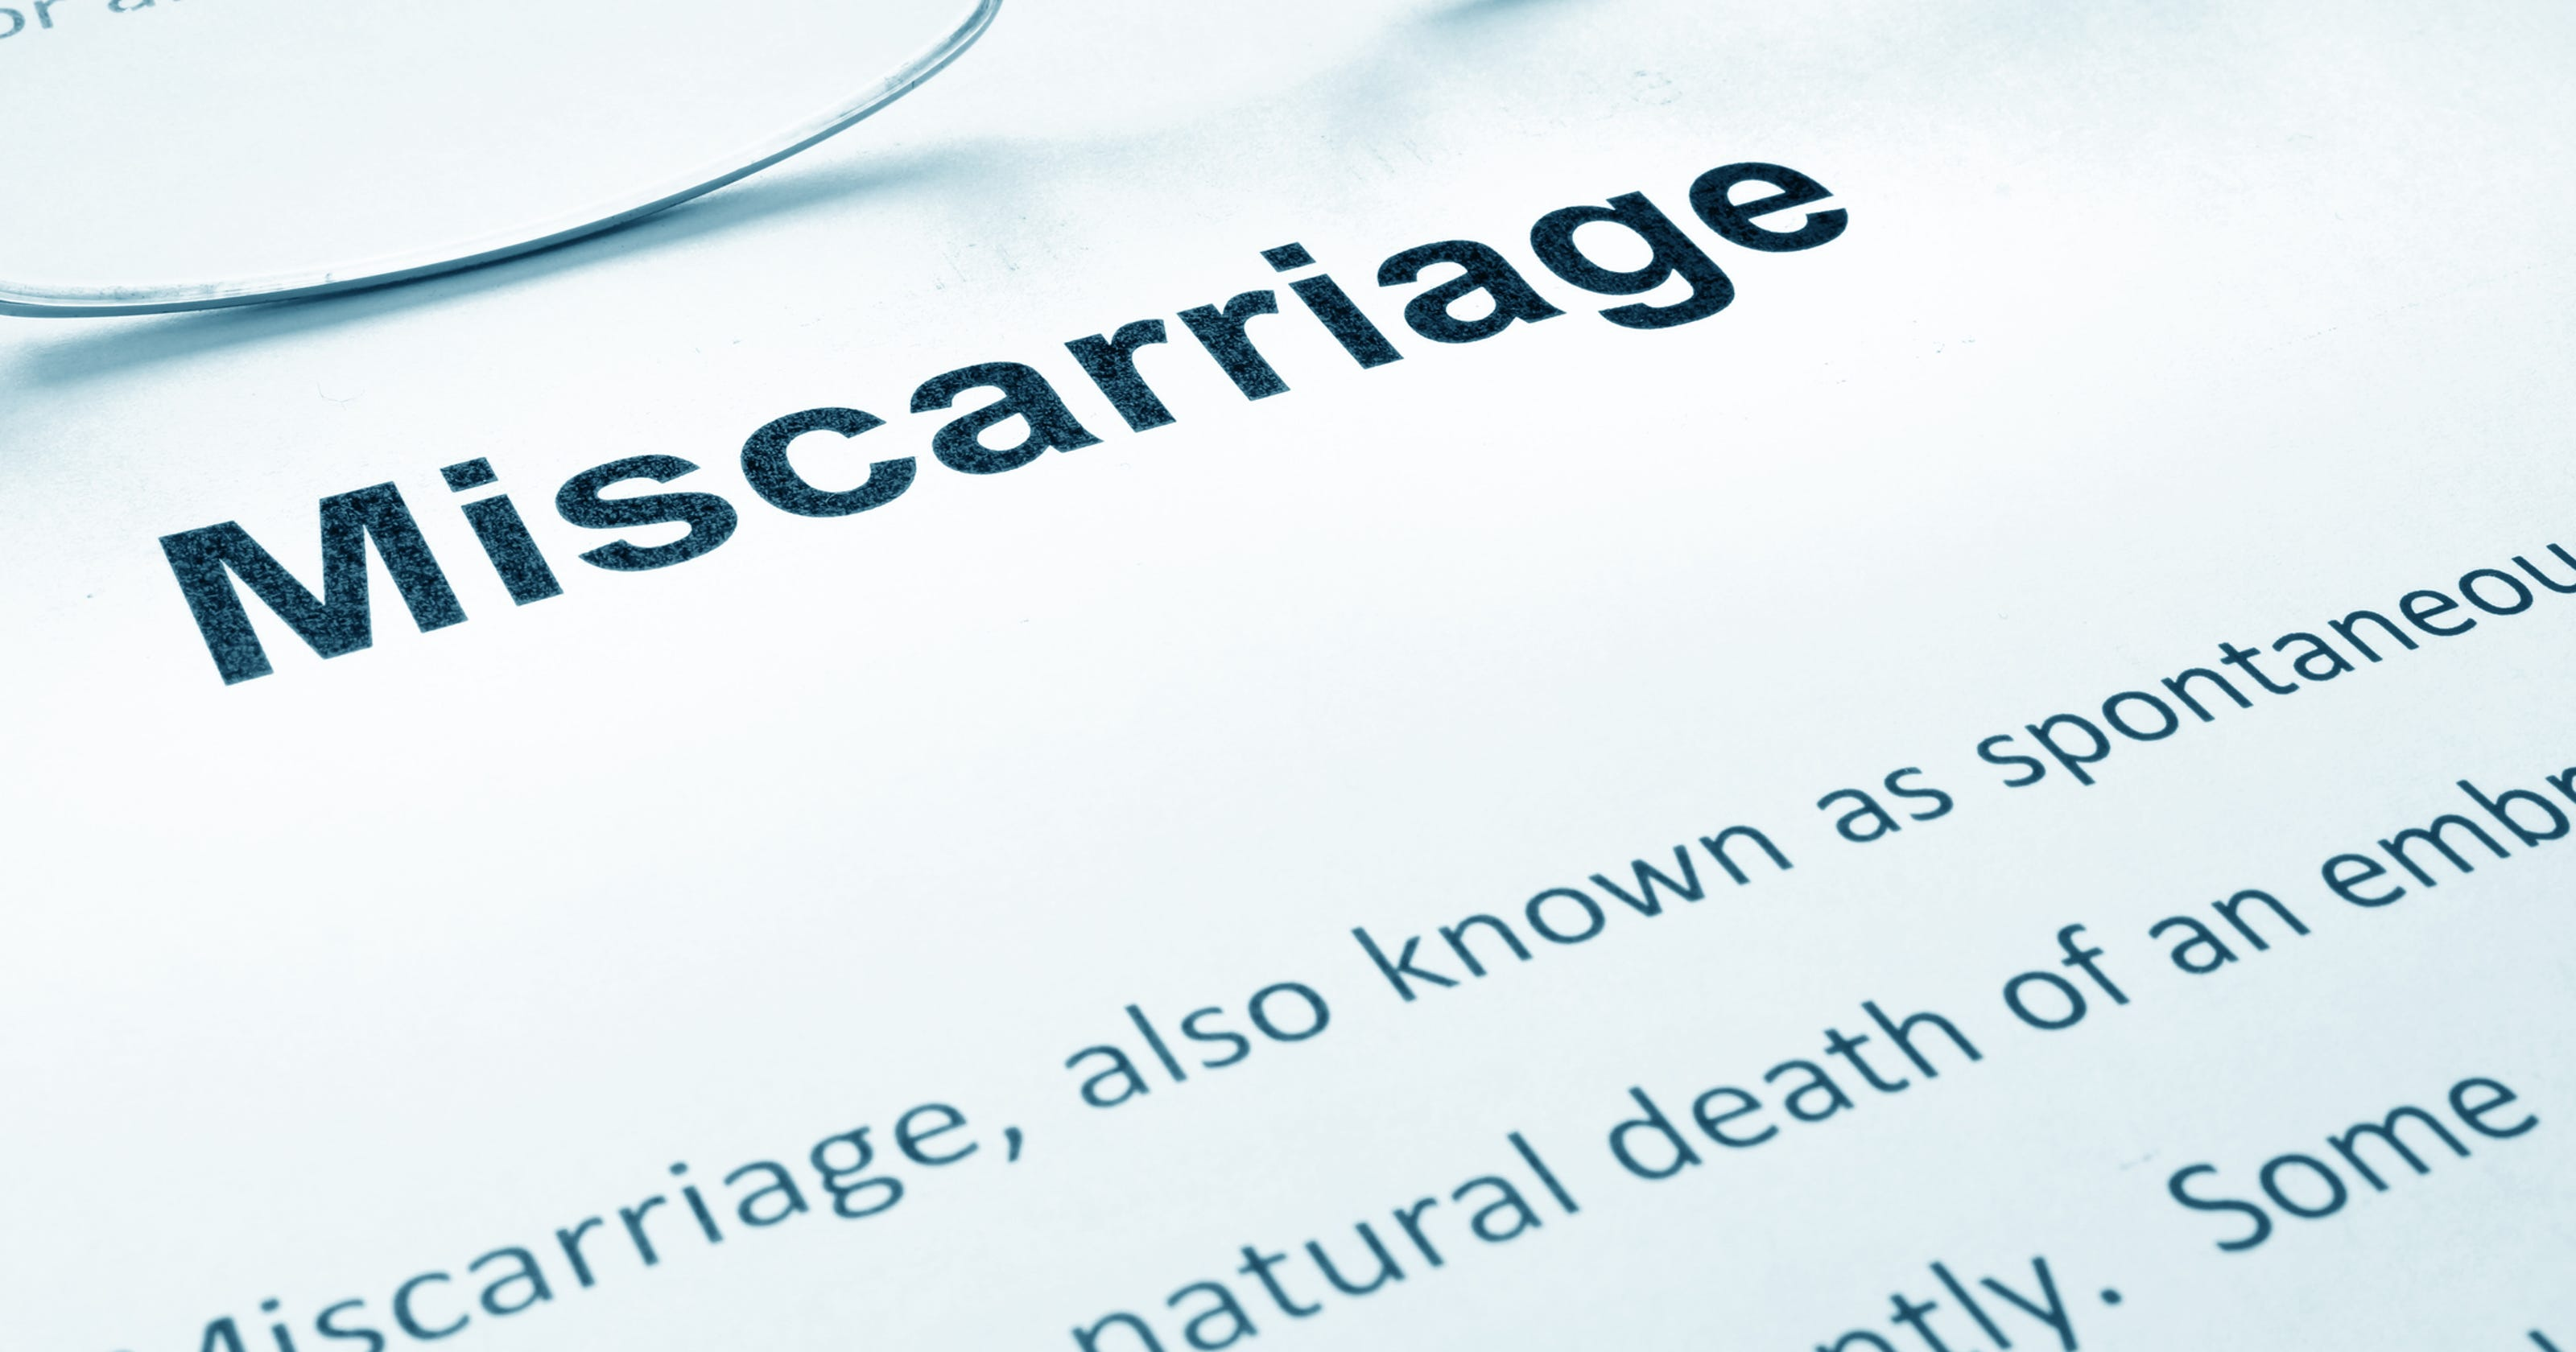 So many women know the pain of miscarriage